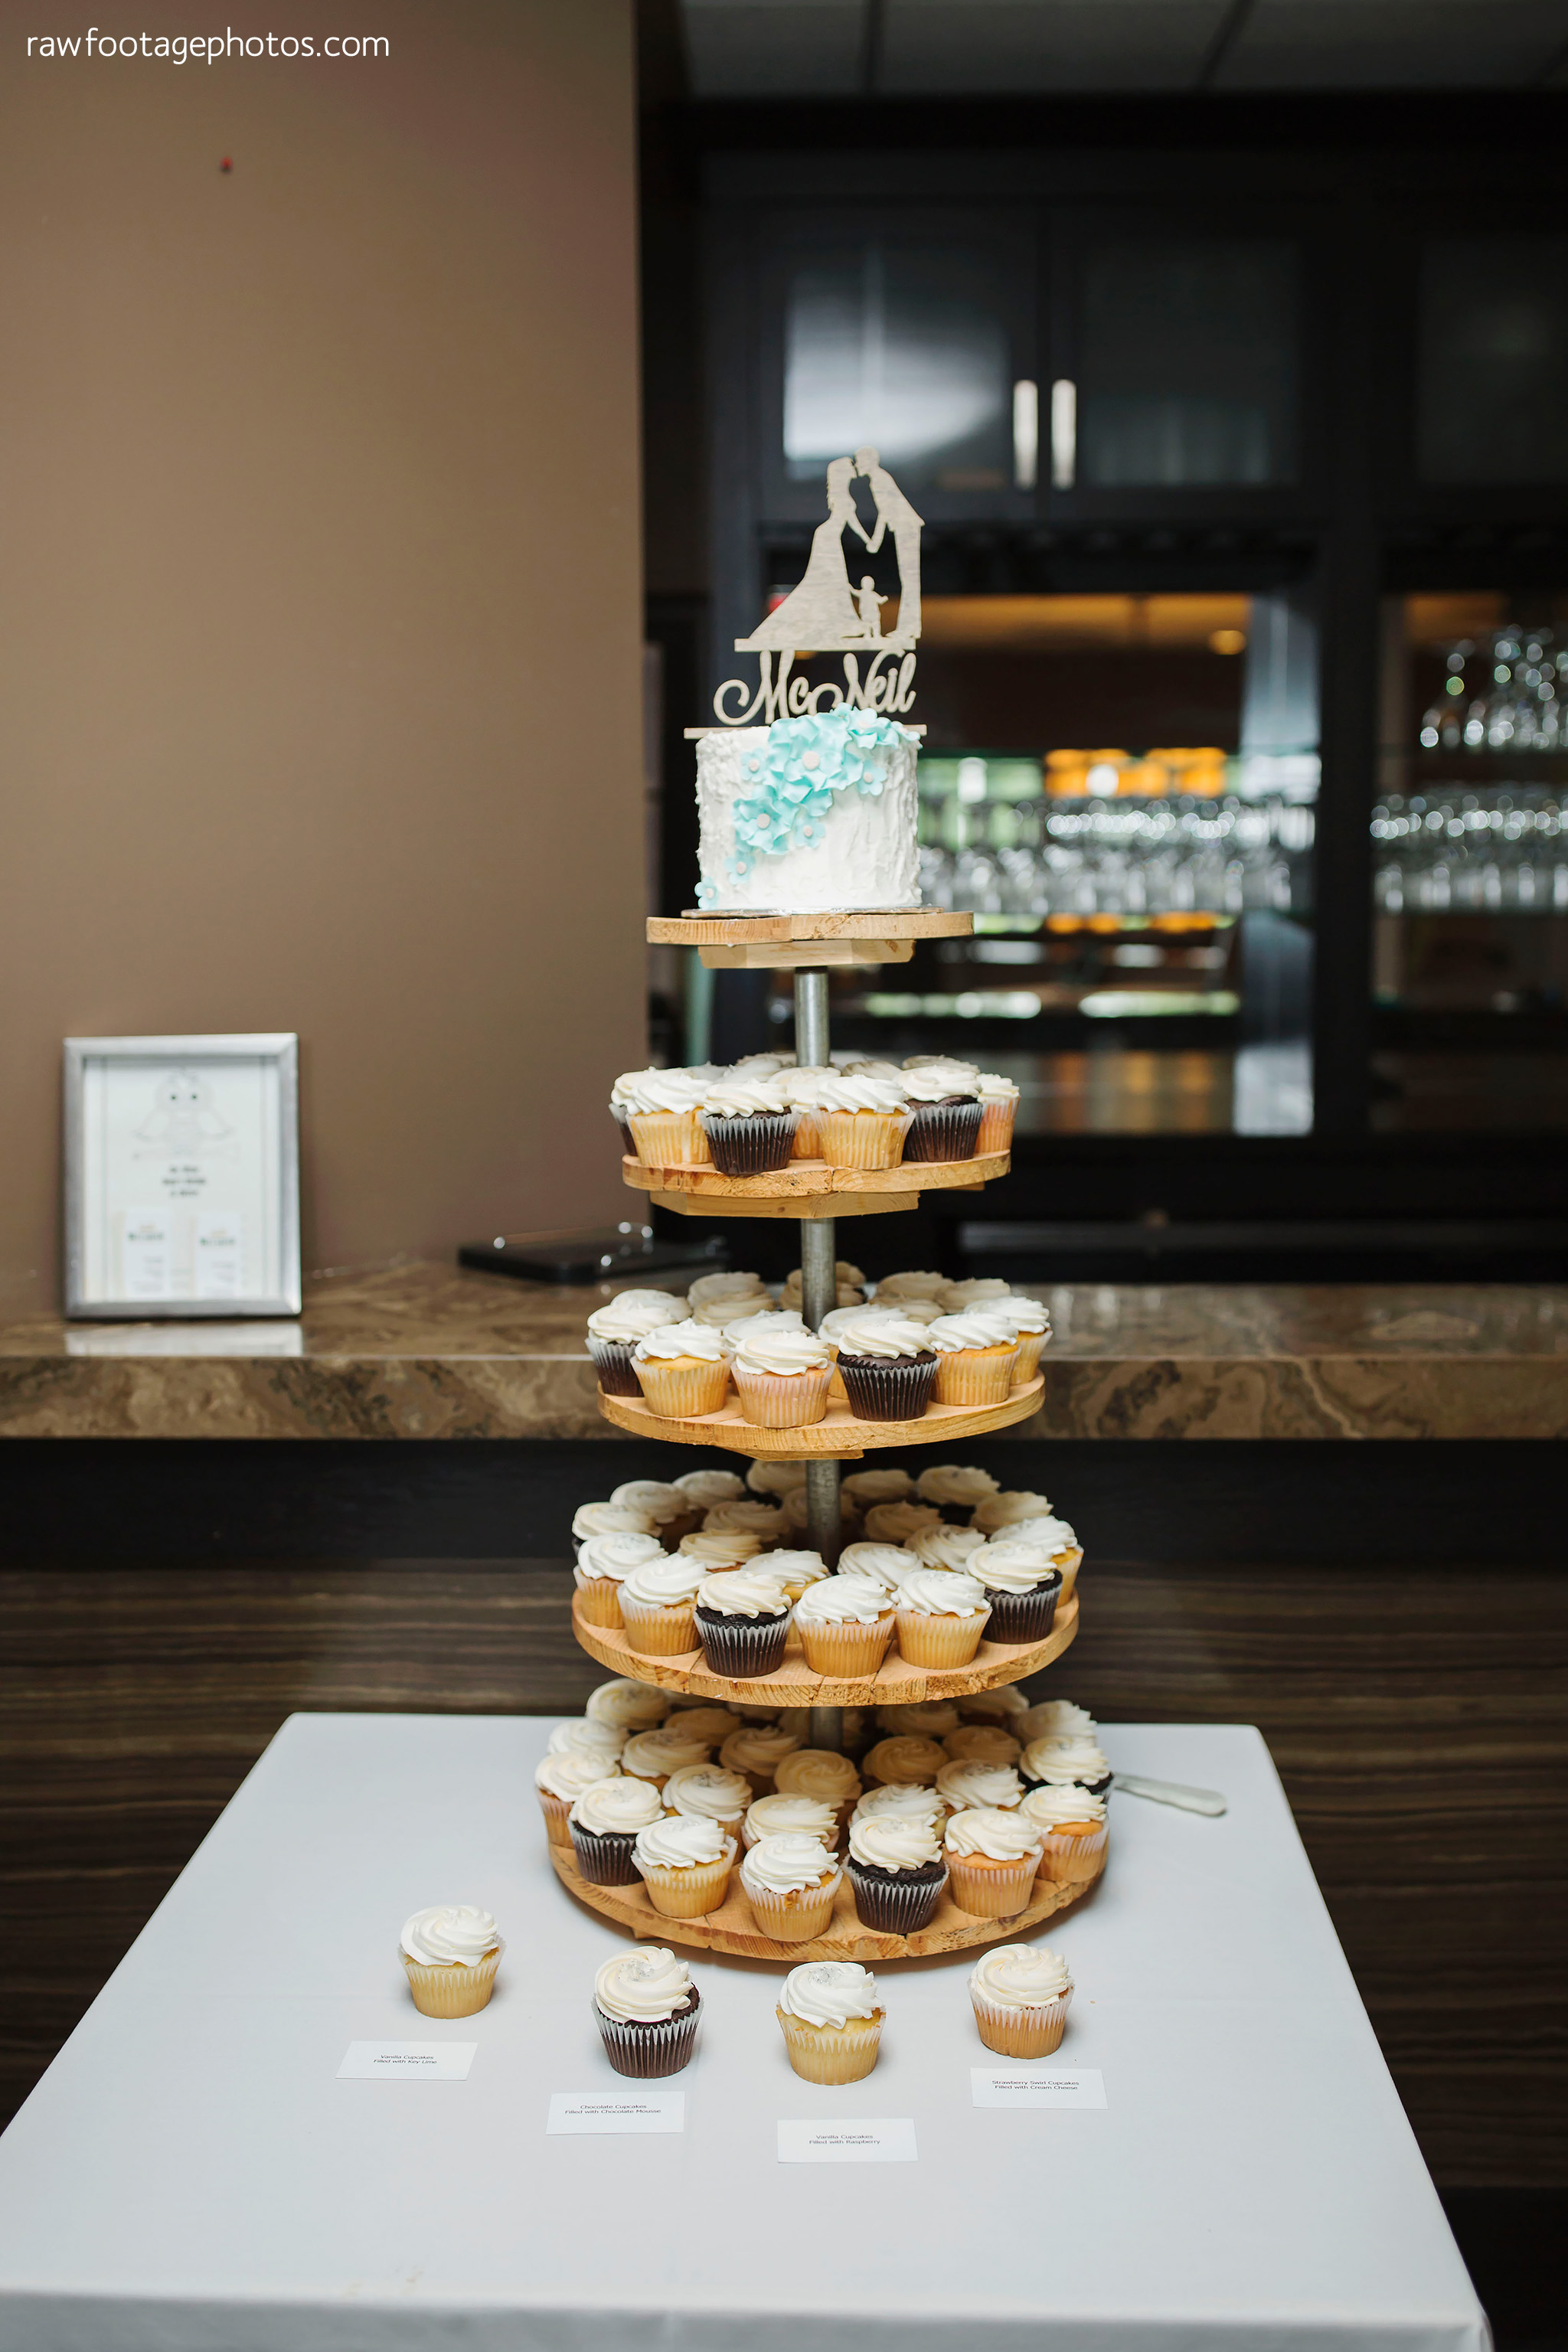 london_ontario_wedding_photographer-west_haven_golf_and_country_club-raw_footage_photography004.jpg